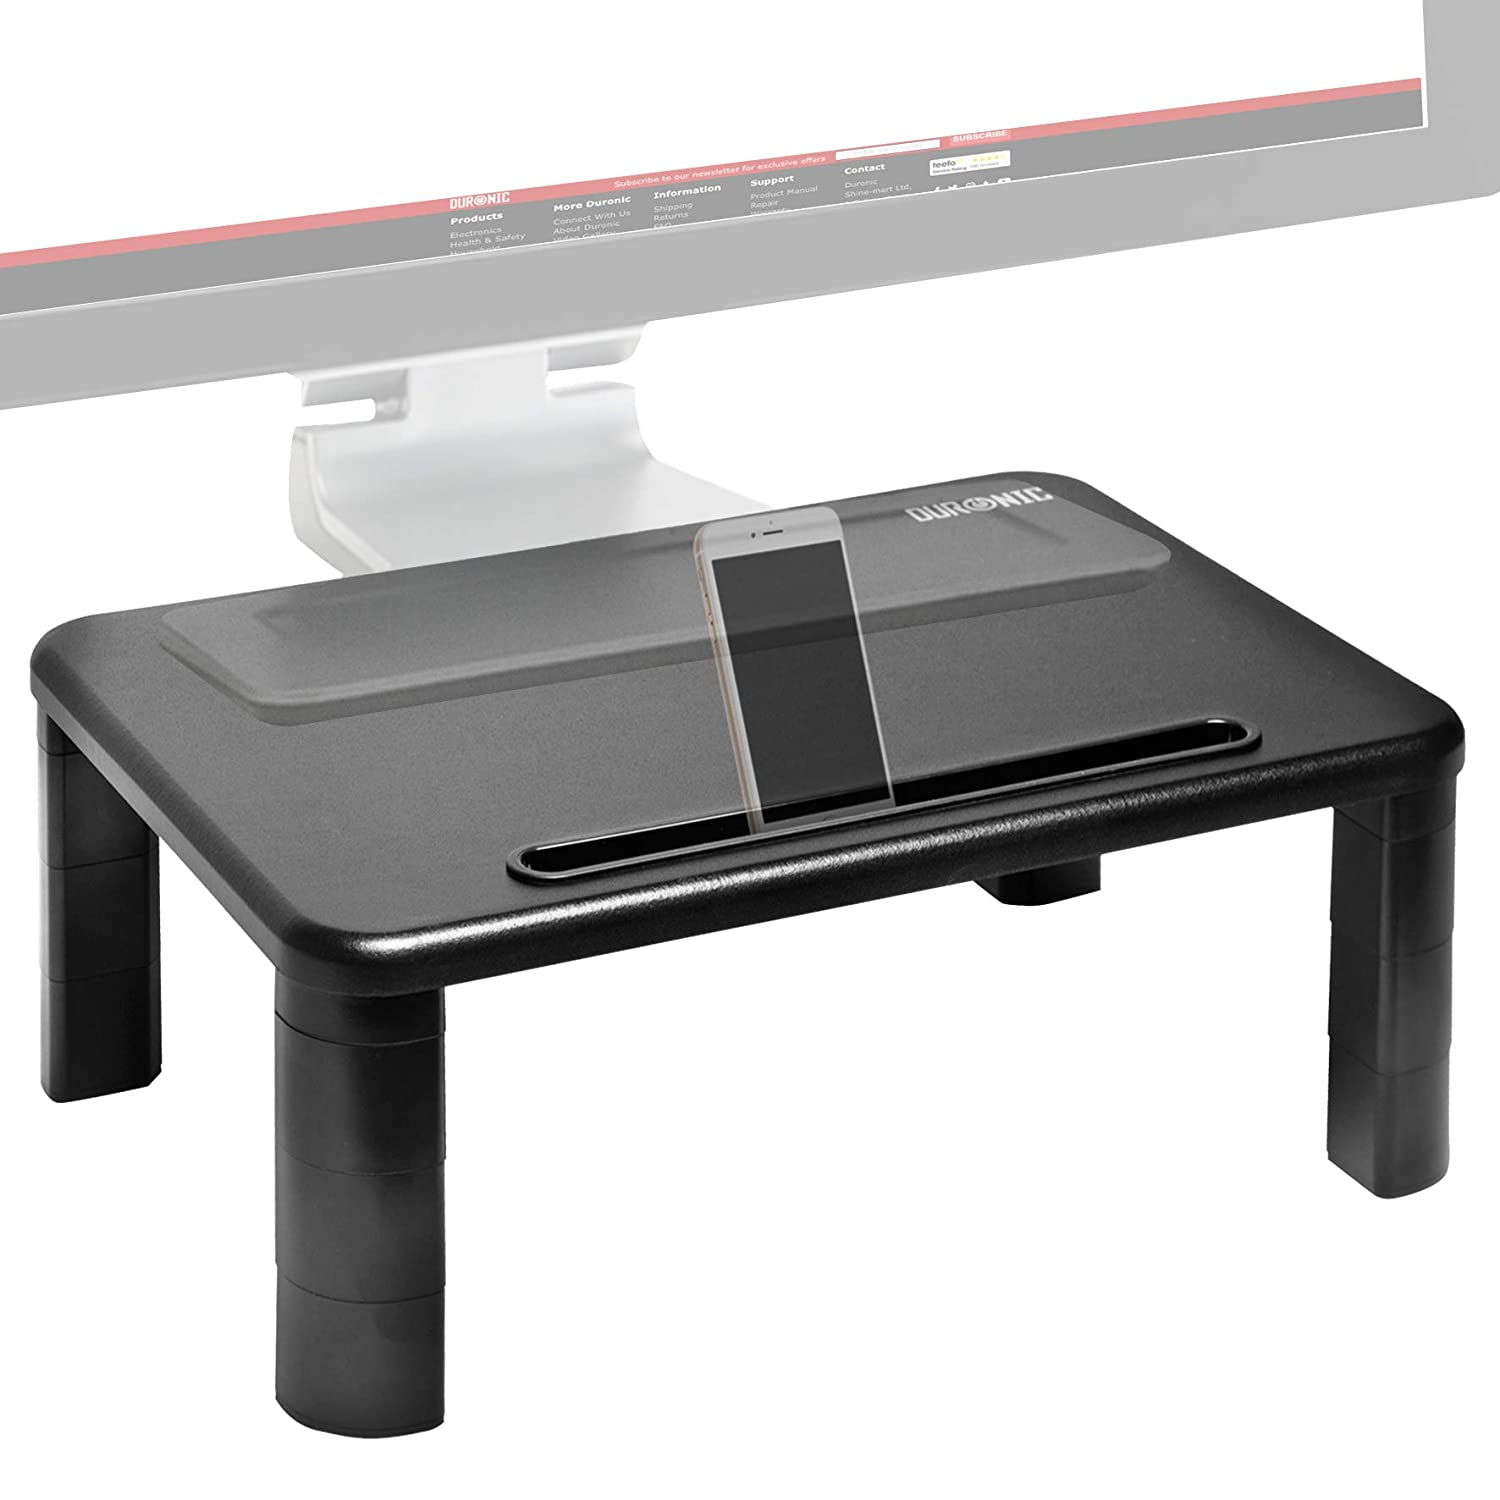 Duronic DM054 Black Acrylic Stand Riser for PC Computer Monitor/Laptop and TV (50cm X 20cm / 30kg capacity) + 2 Year Warranty